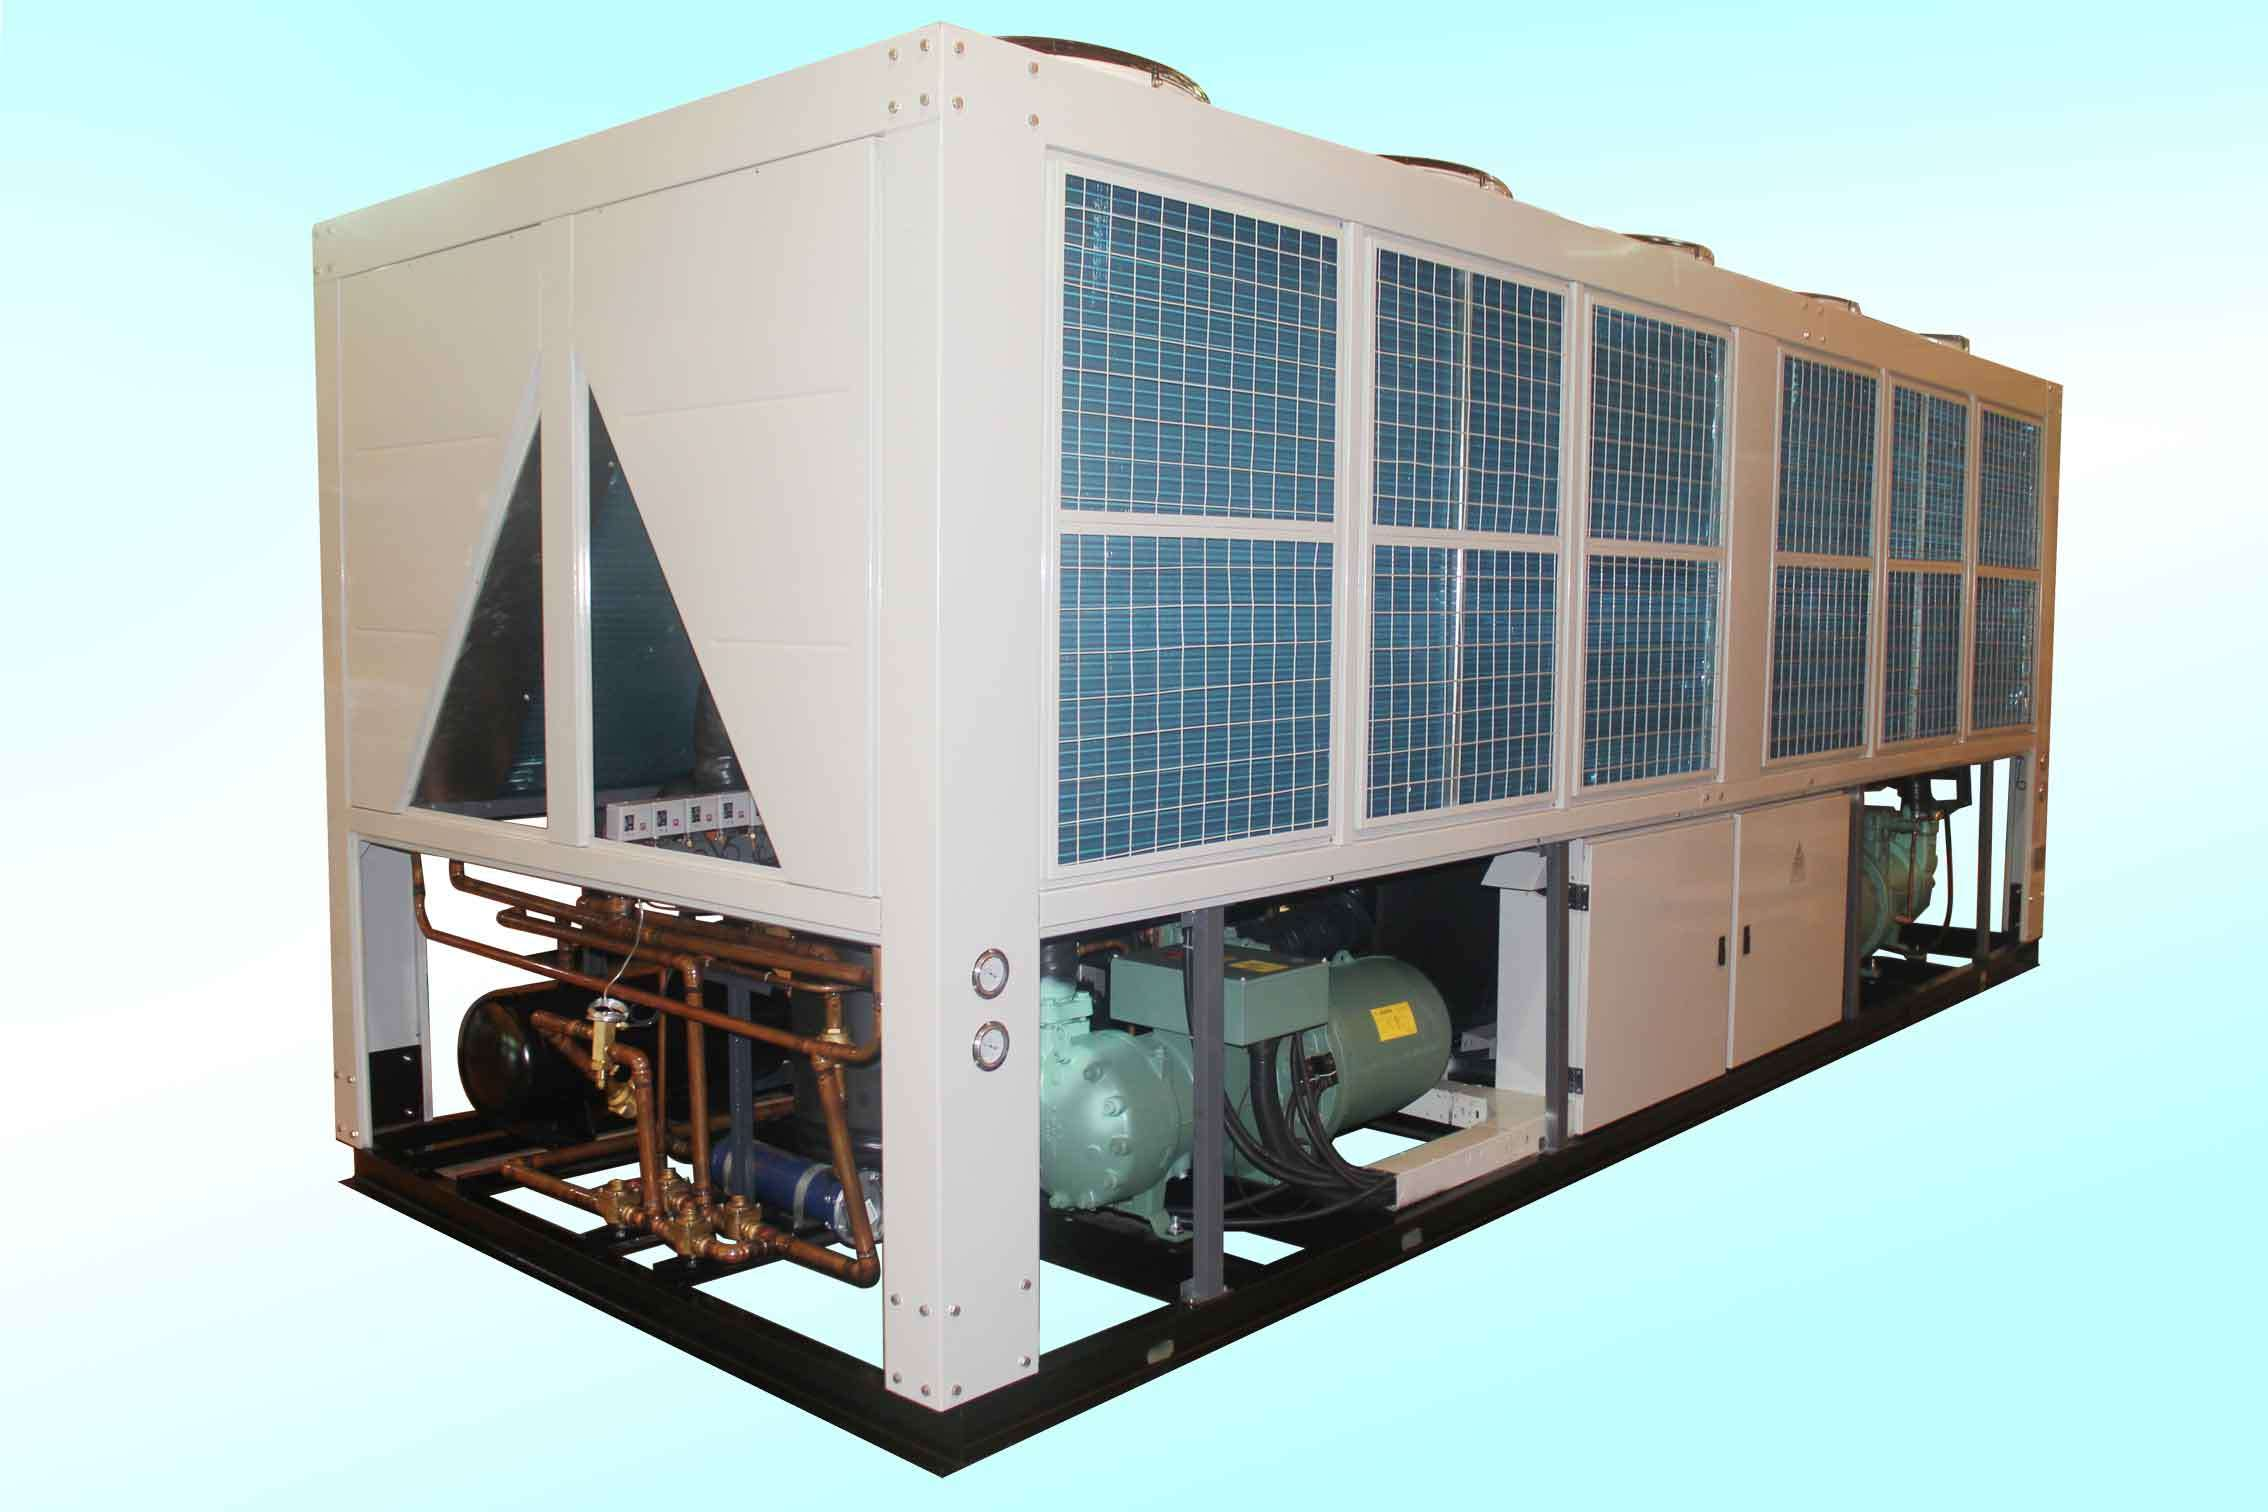 China HWAL Air Cooled Chiller China Air Cooled Chiller Chiller #359692